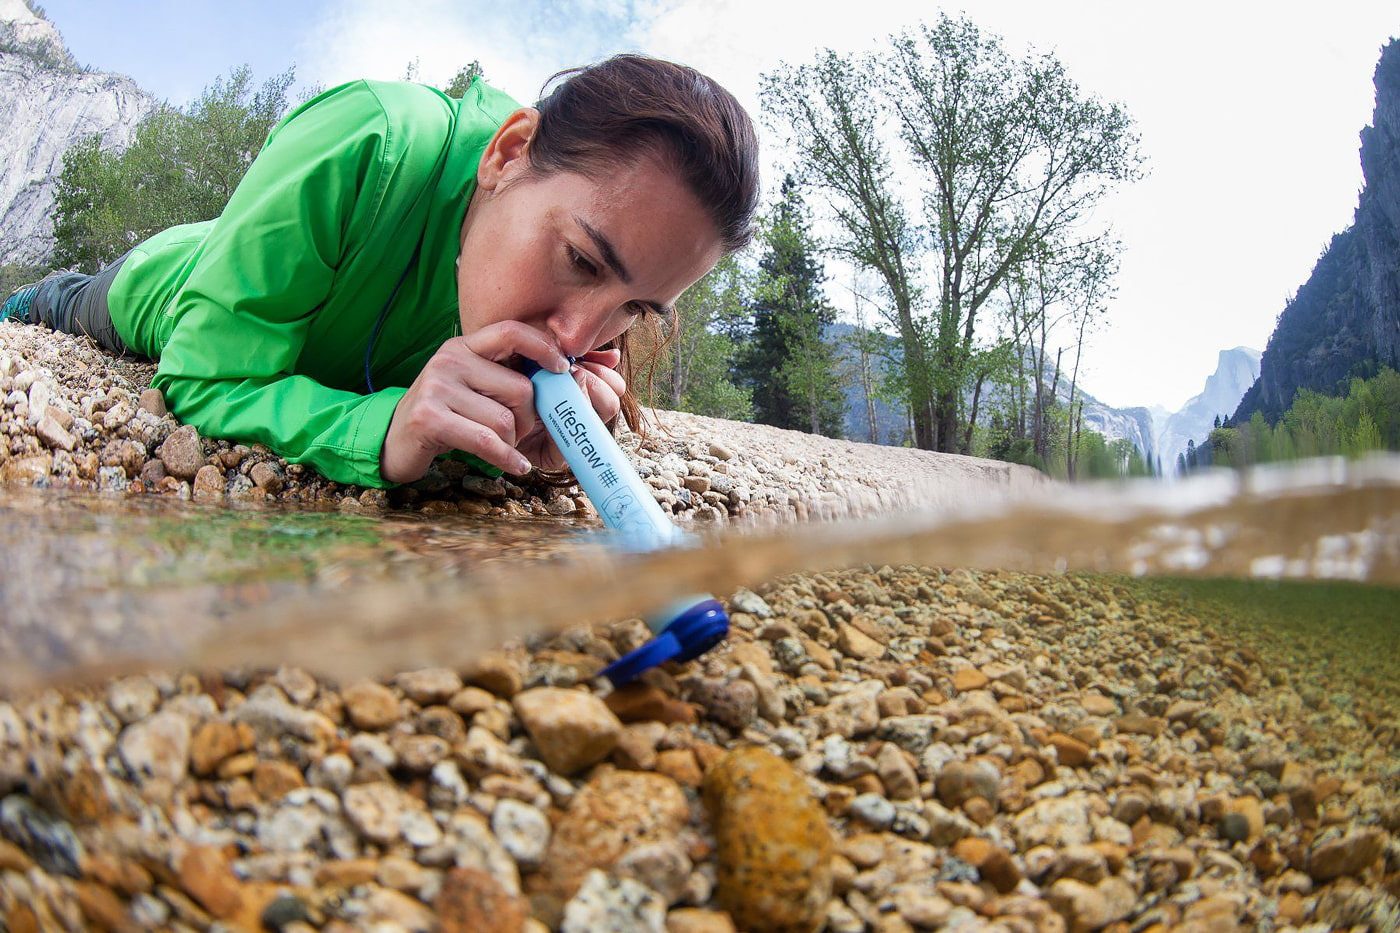 Best Water Filter for Hiking